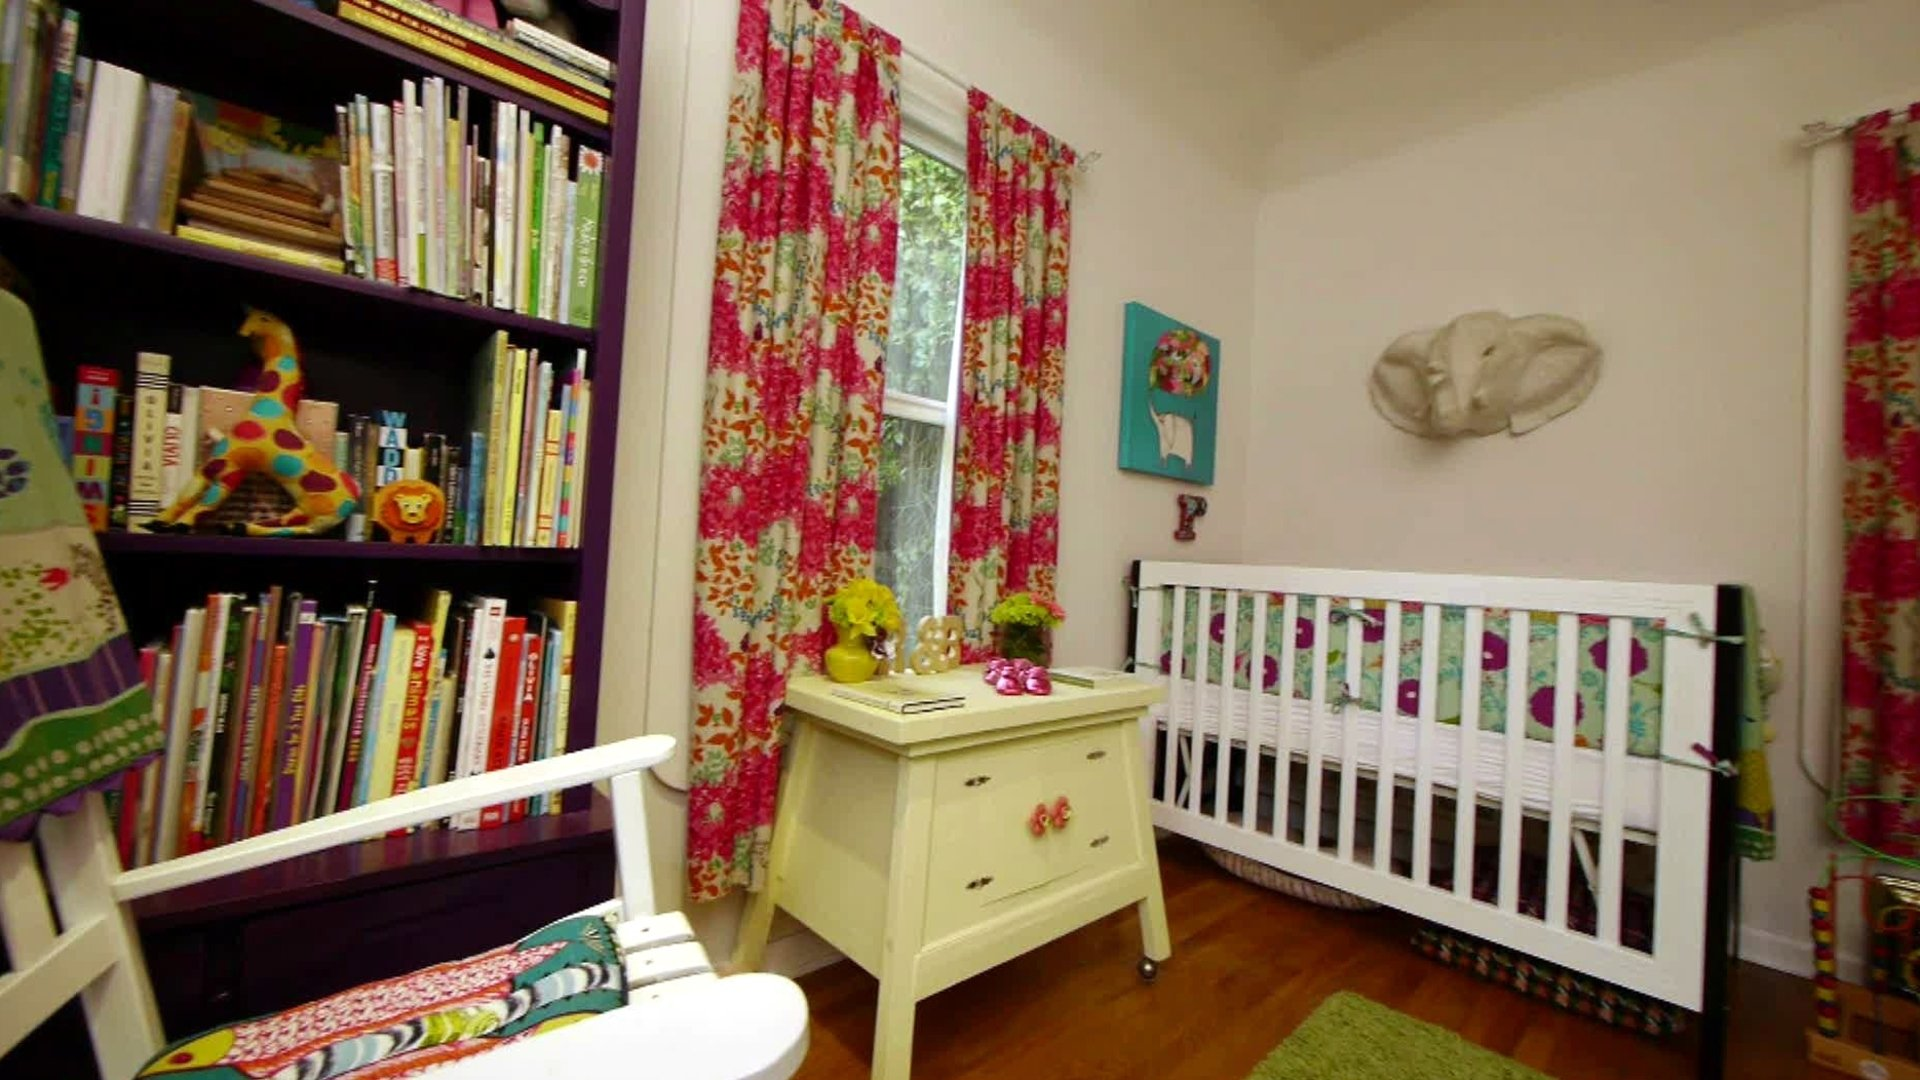 10 Stylish Storage Ideas For Kids Rooms small space decorating shared kids room and storage ideas hgtv 2020